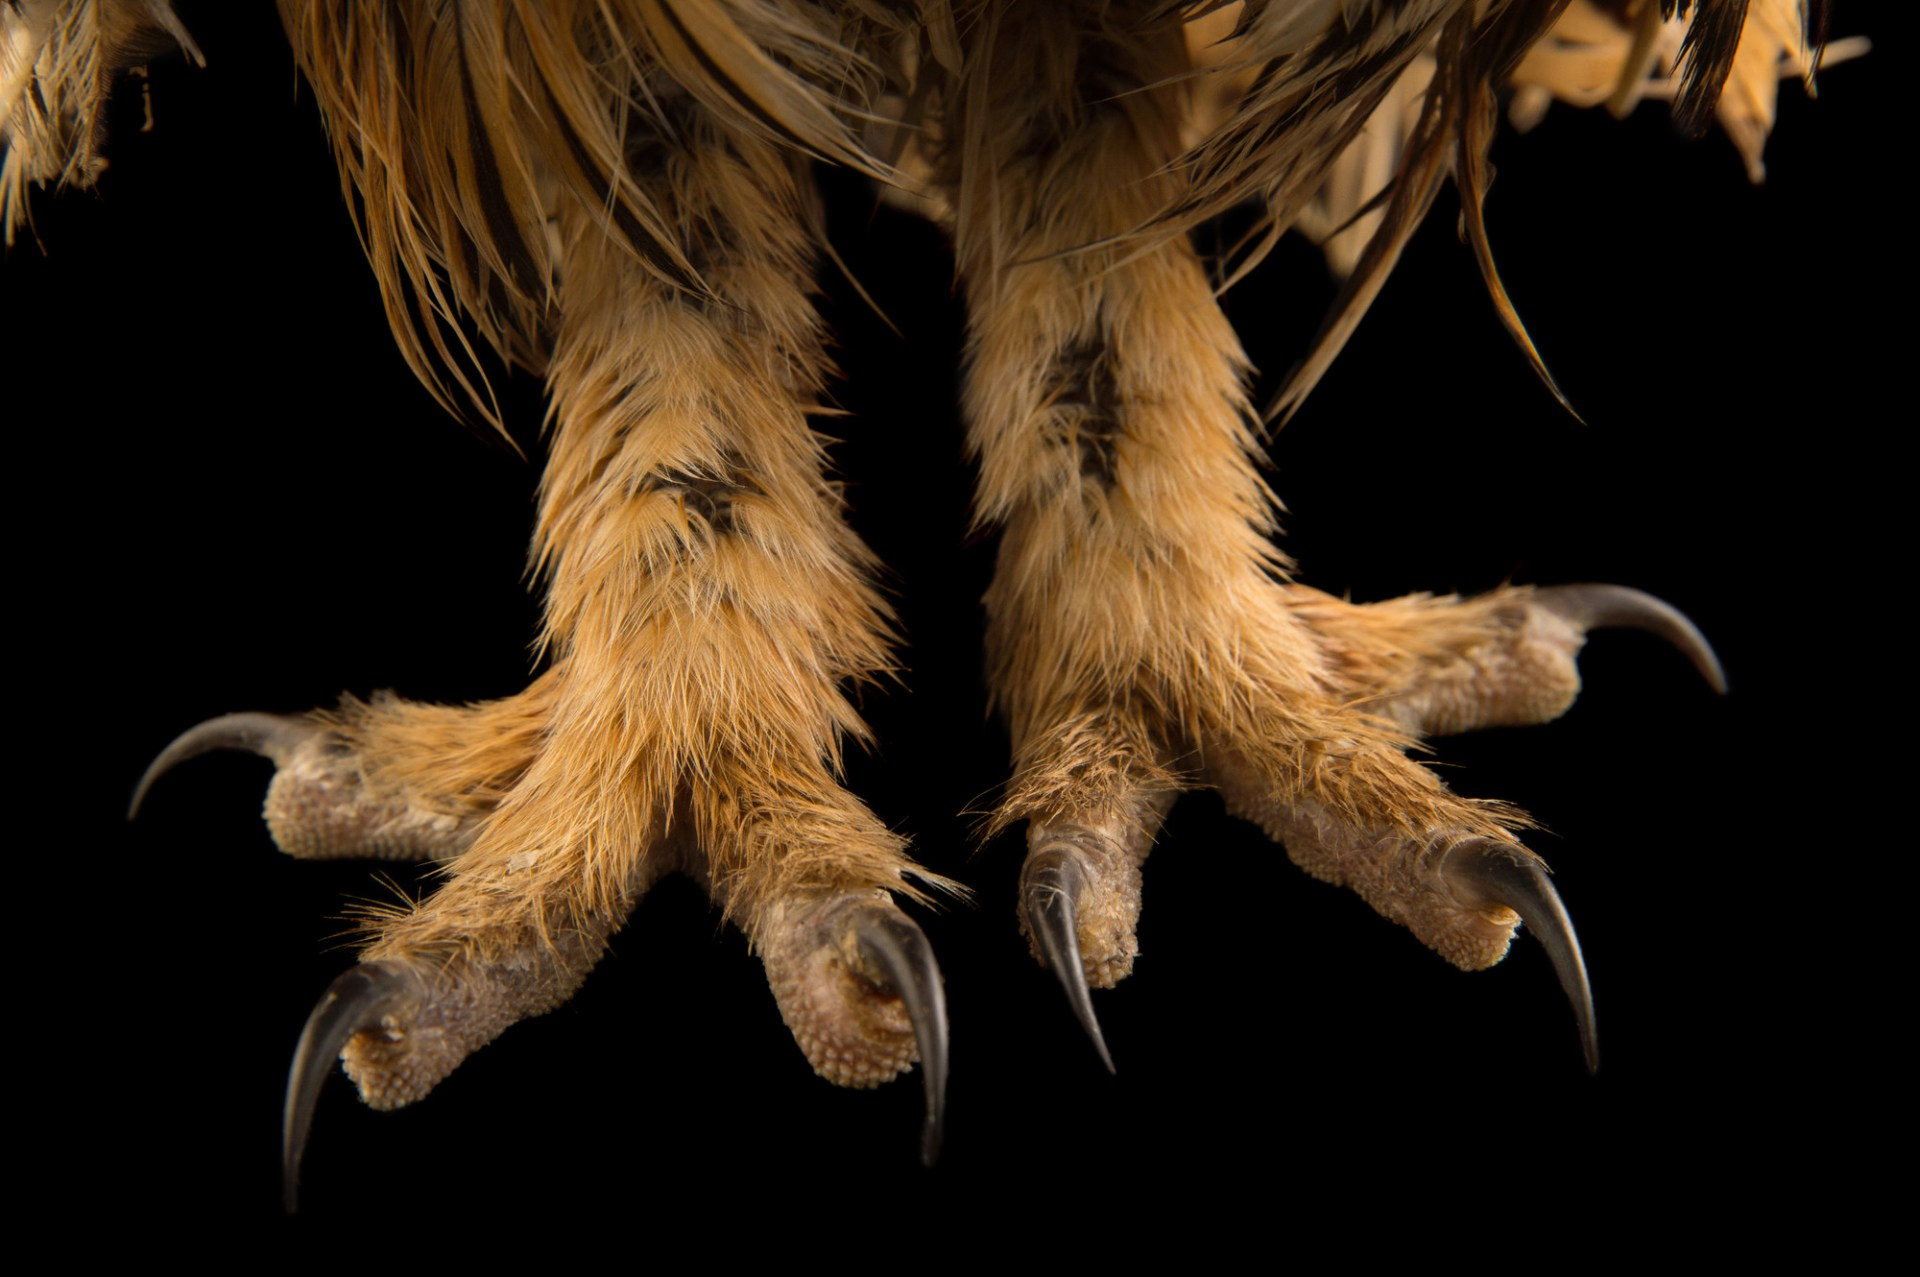 Picture of the feet of a striped owl (Pseudoscops clamator forbesi) at the Nispero Zoo.